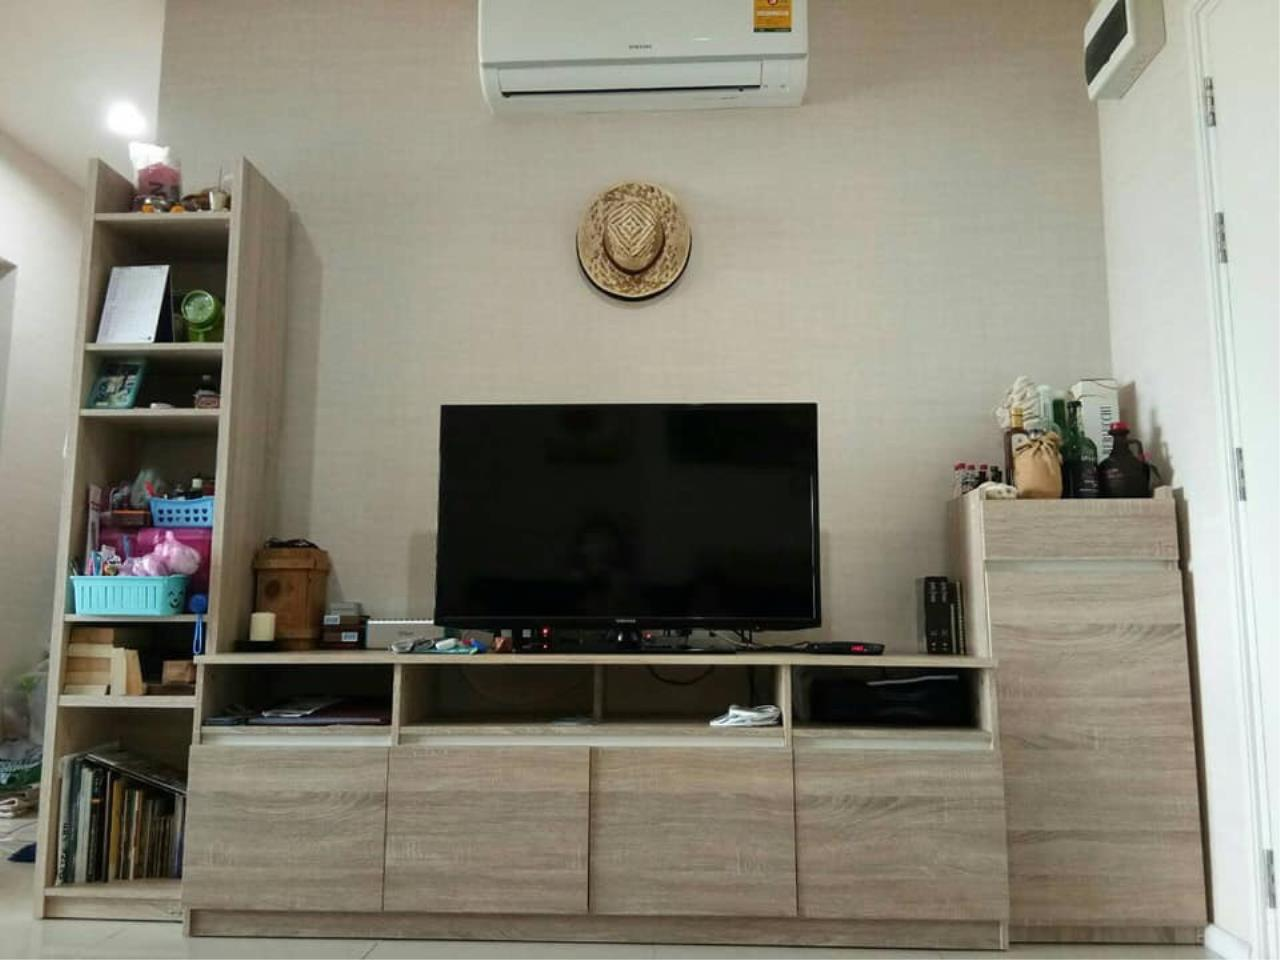 First Choice Properties by Su Agent Agency's KP016 Sale Aspire Sukhumvit 48 , 1 bed  38 sqm. high floor Price 3.85 MB. 9